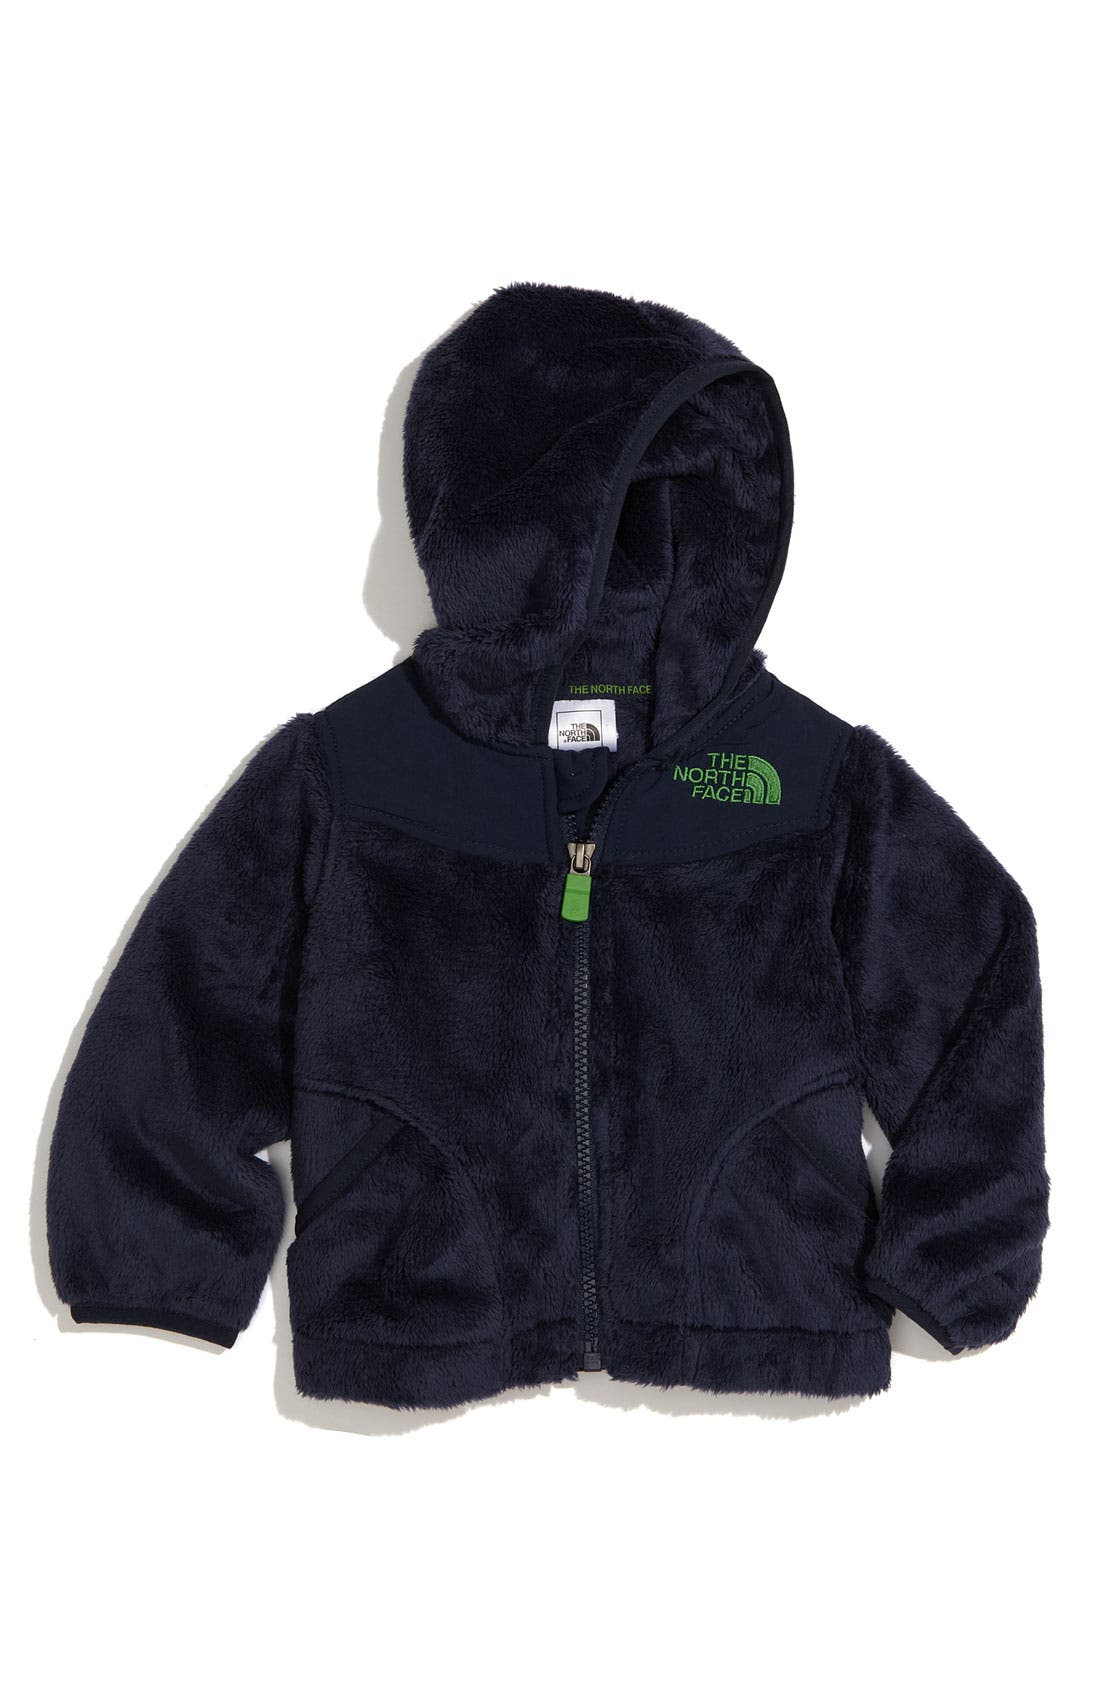 Alternate Image 1 Selected - The North Face 'Oso' Hoodie (Infant)